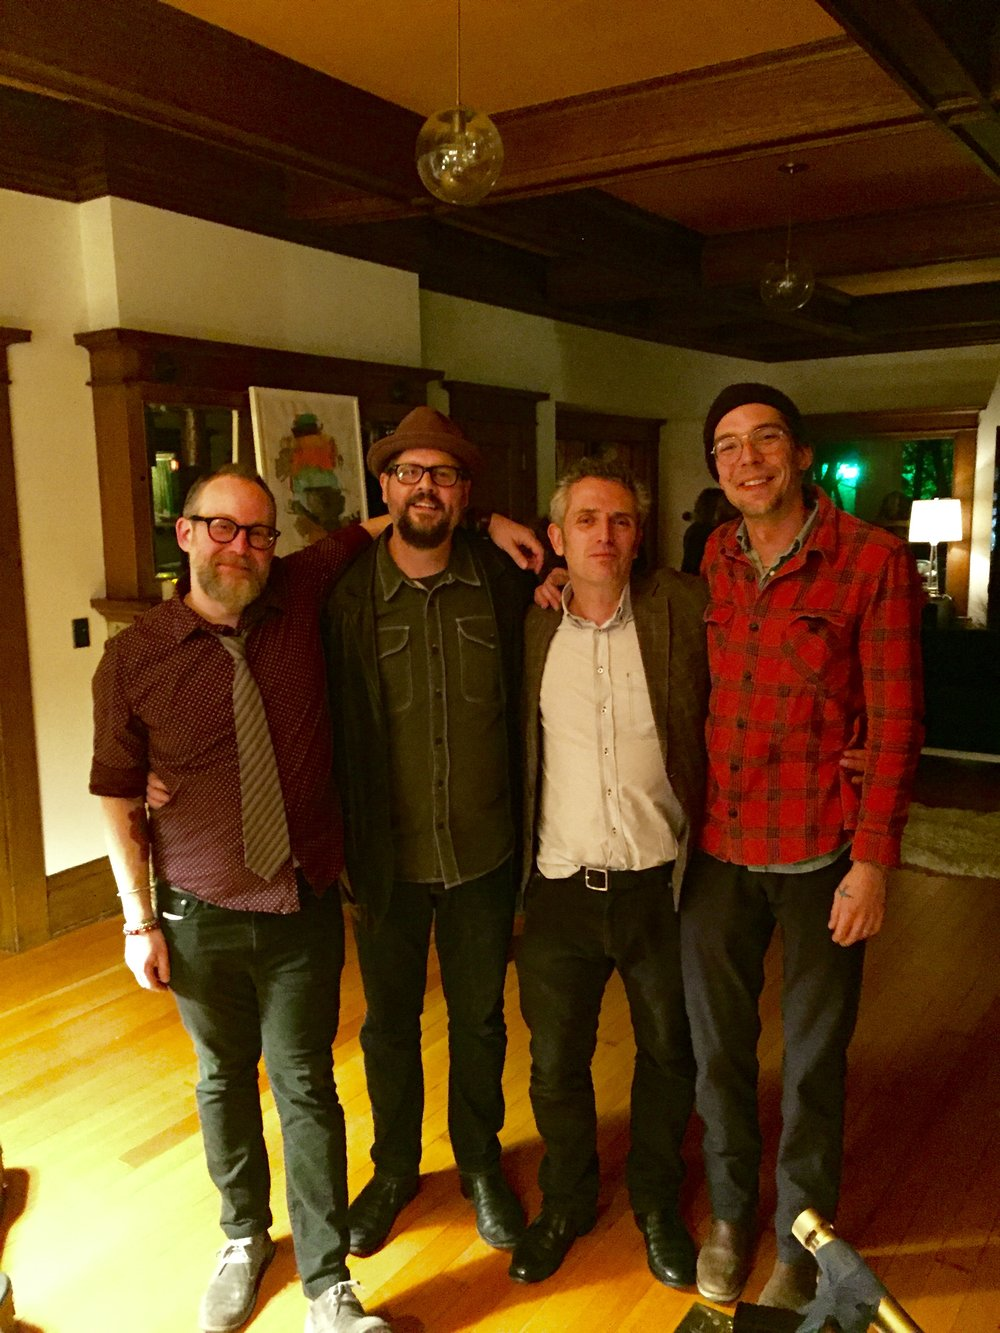 (L to R) Lee Henderson, Patterson Hood, Josh Taylor, Justin Townes Earle